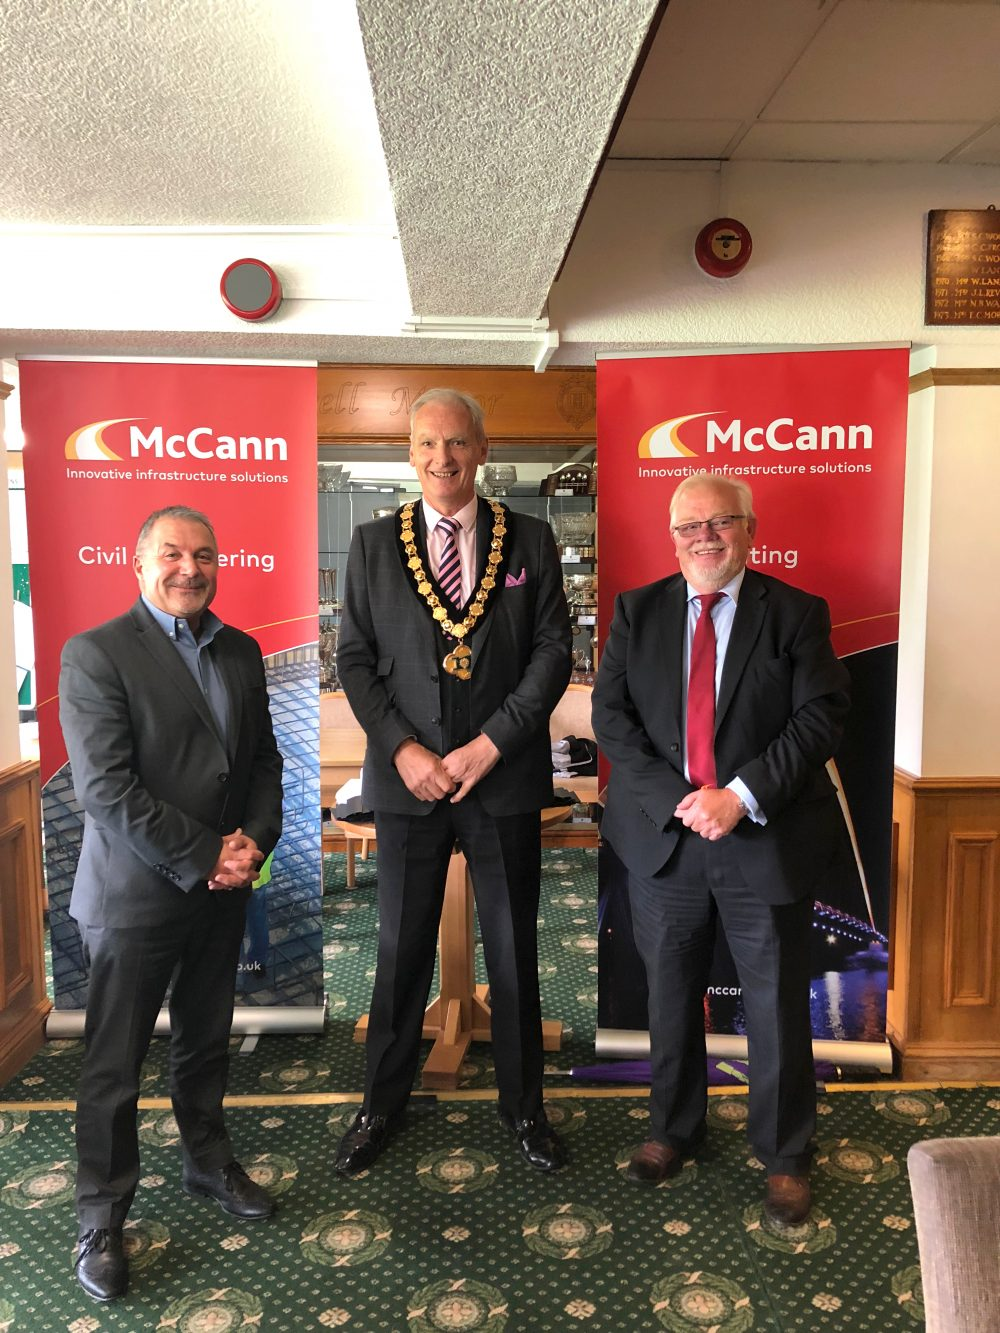 (left to right): Tiz Gibson, Local Authority Business Director at McCann, Councillor Kevin Rostance and Steve Adcock, Contracts and Technical Director at McCann